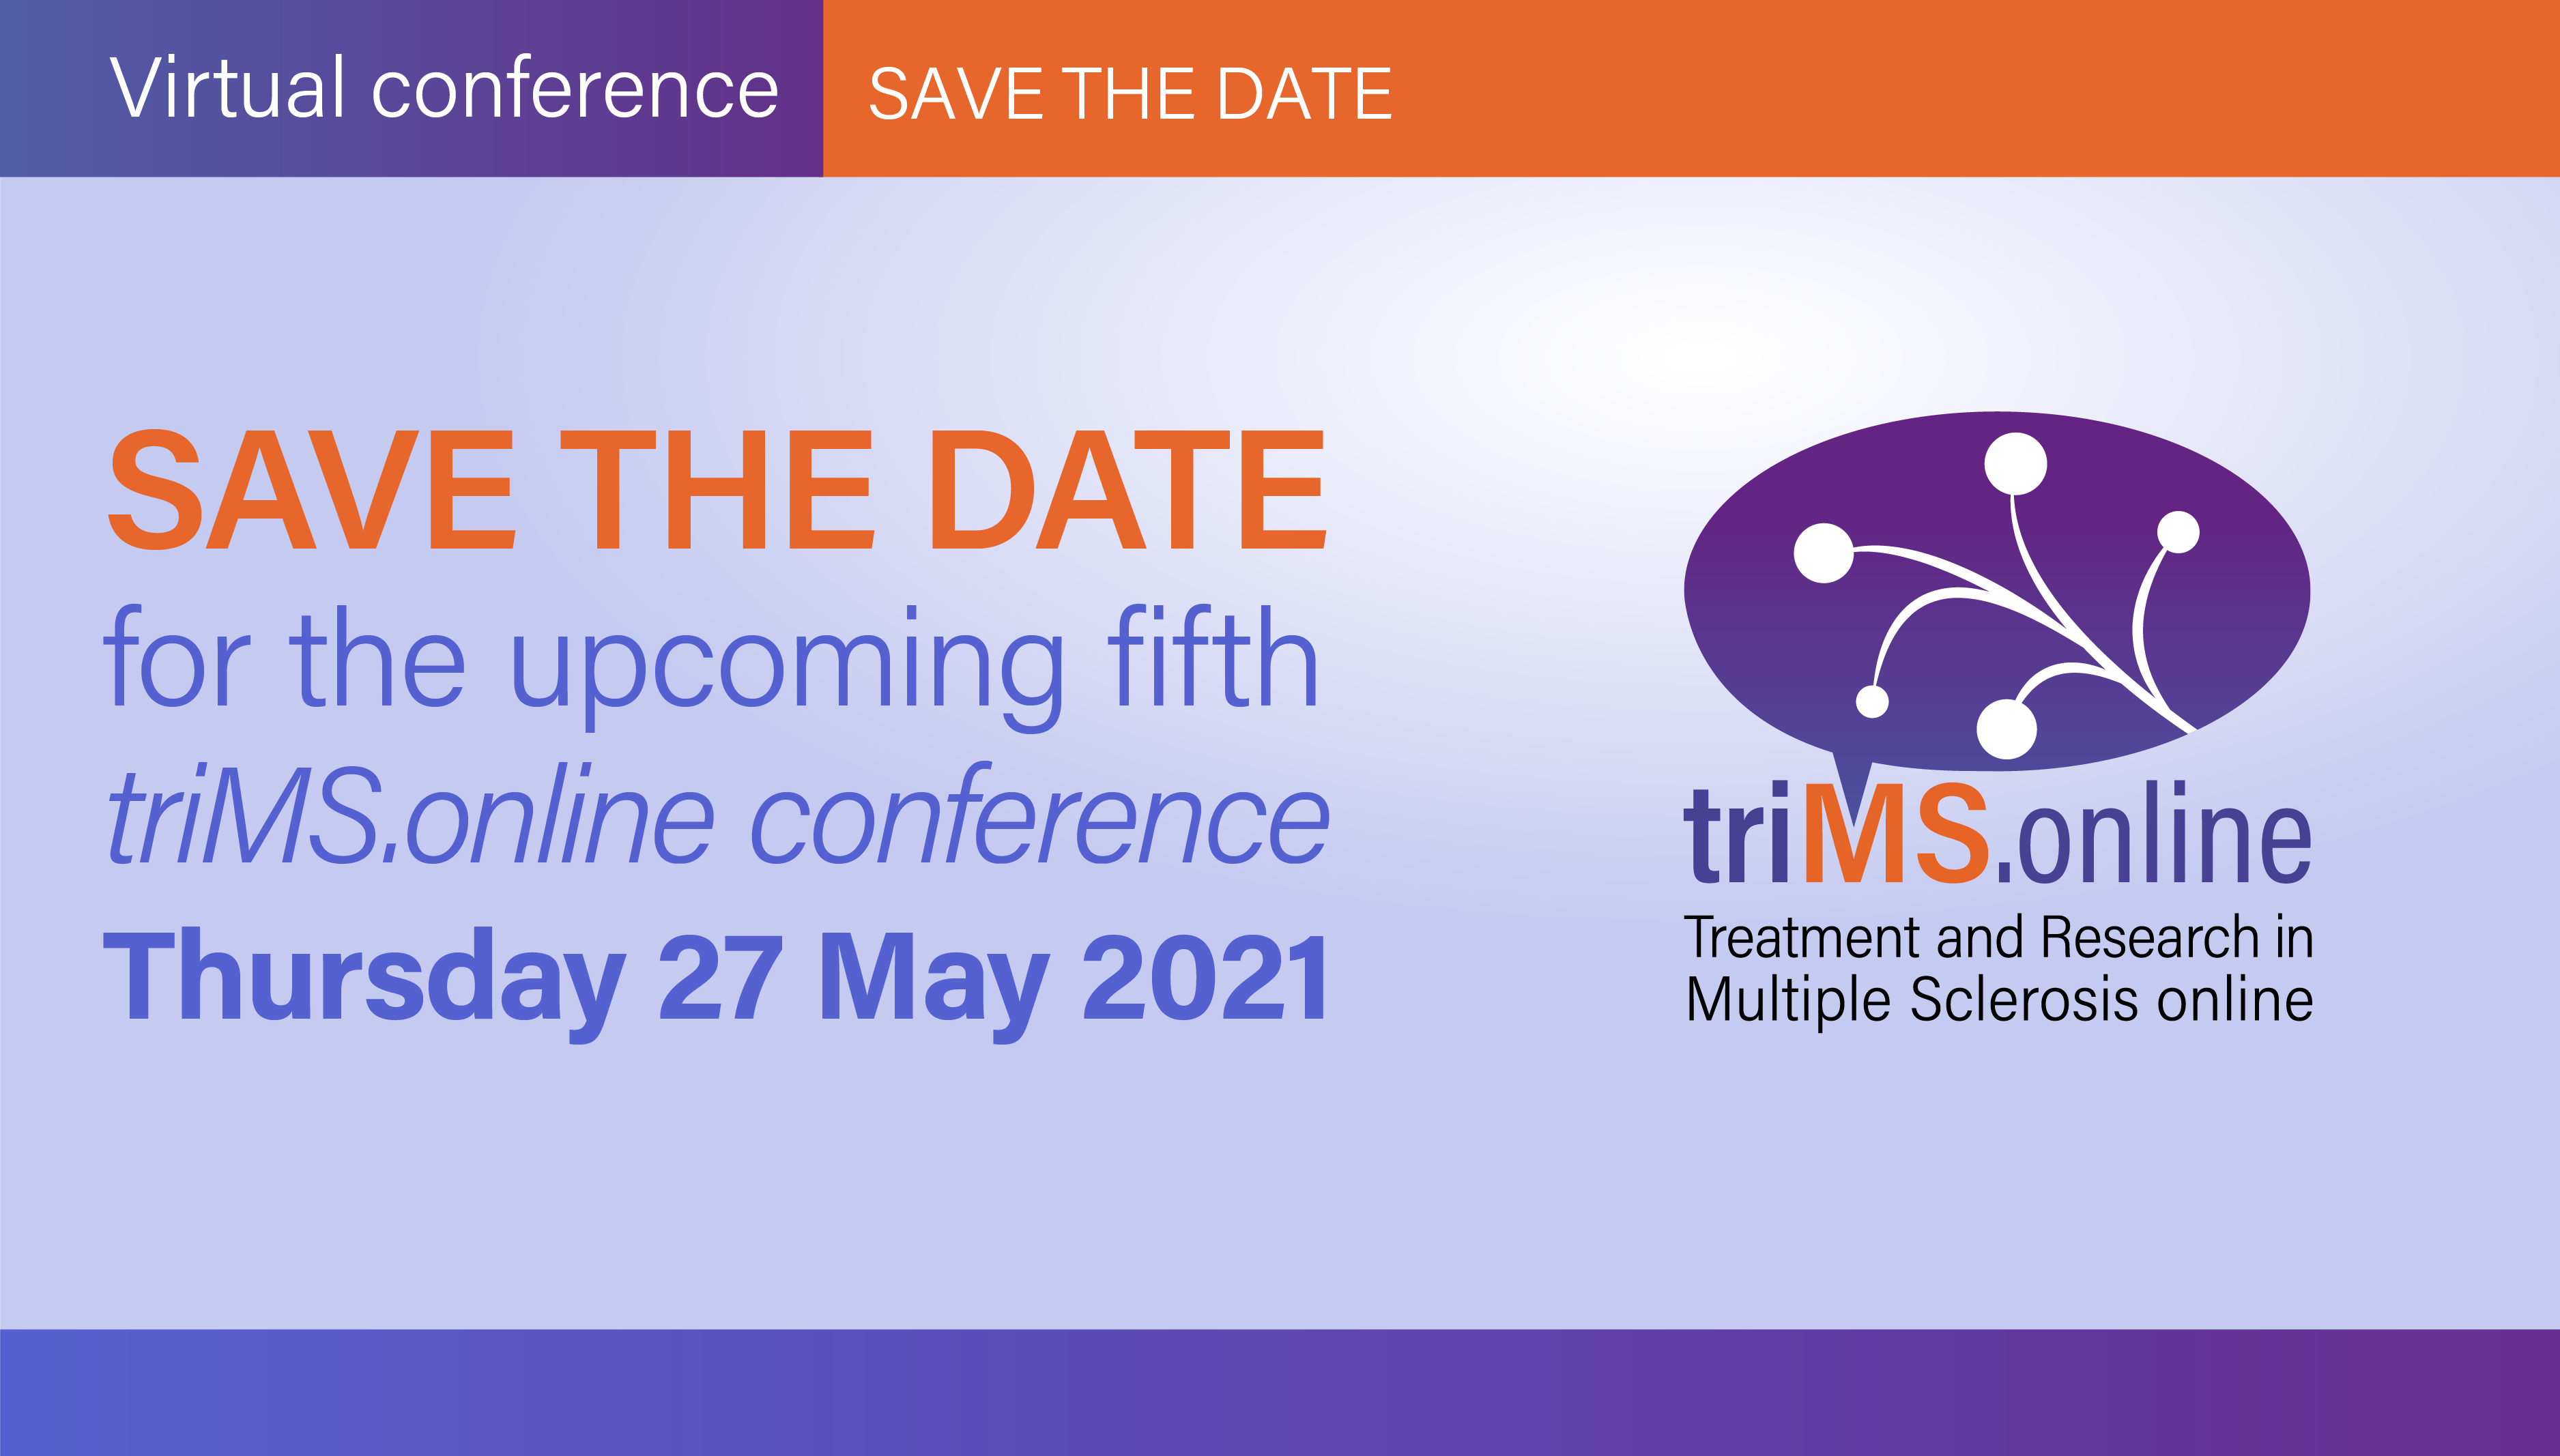 TRIM005 - triMS4 Social media_SAVE THE DATE 2021_v1